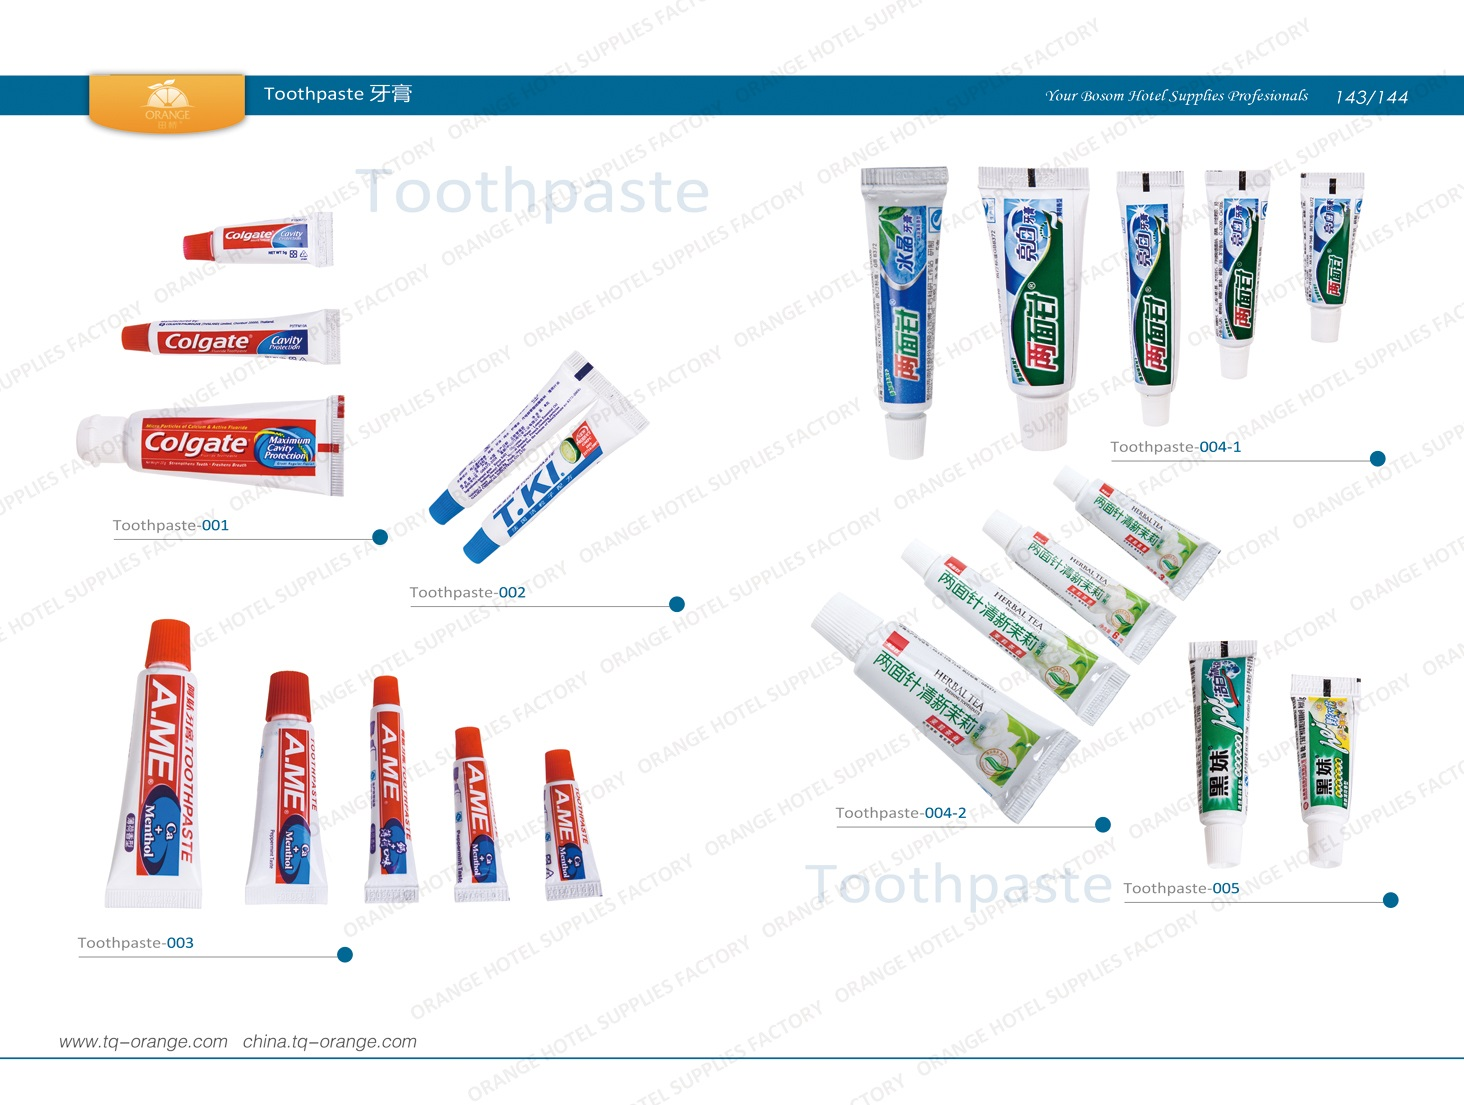 Toothpaste 001~005